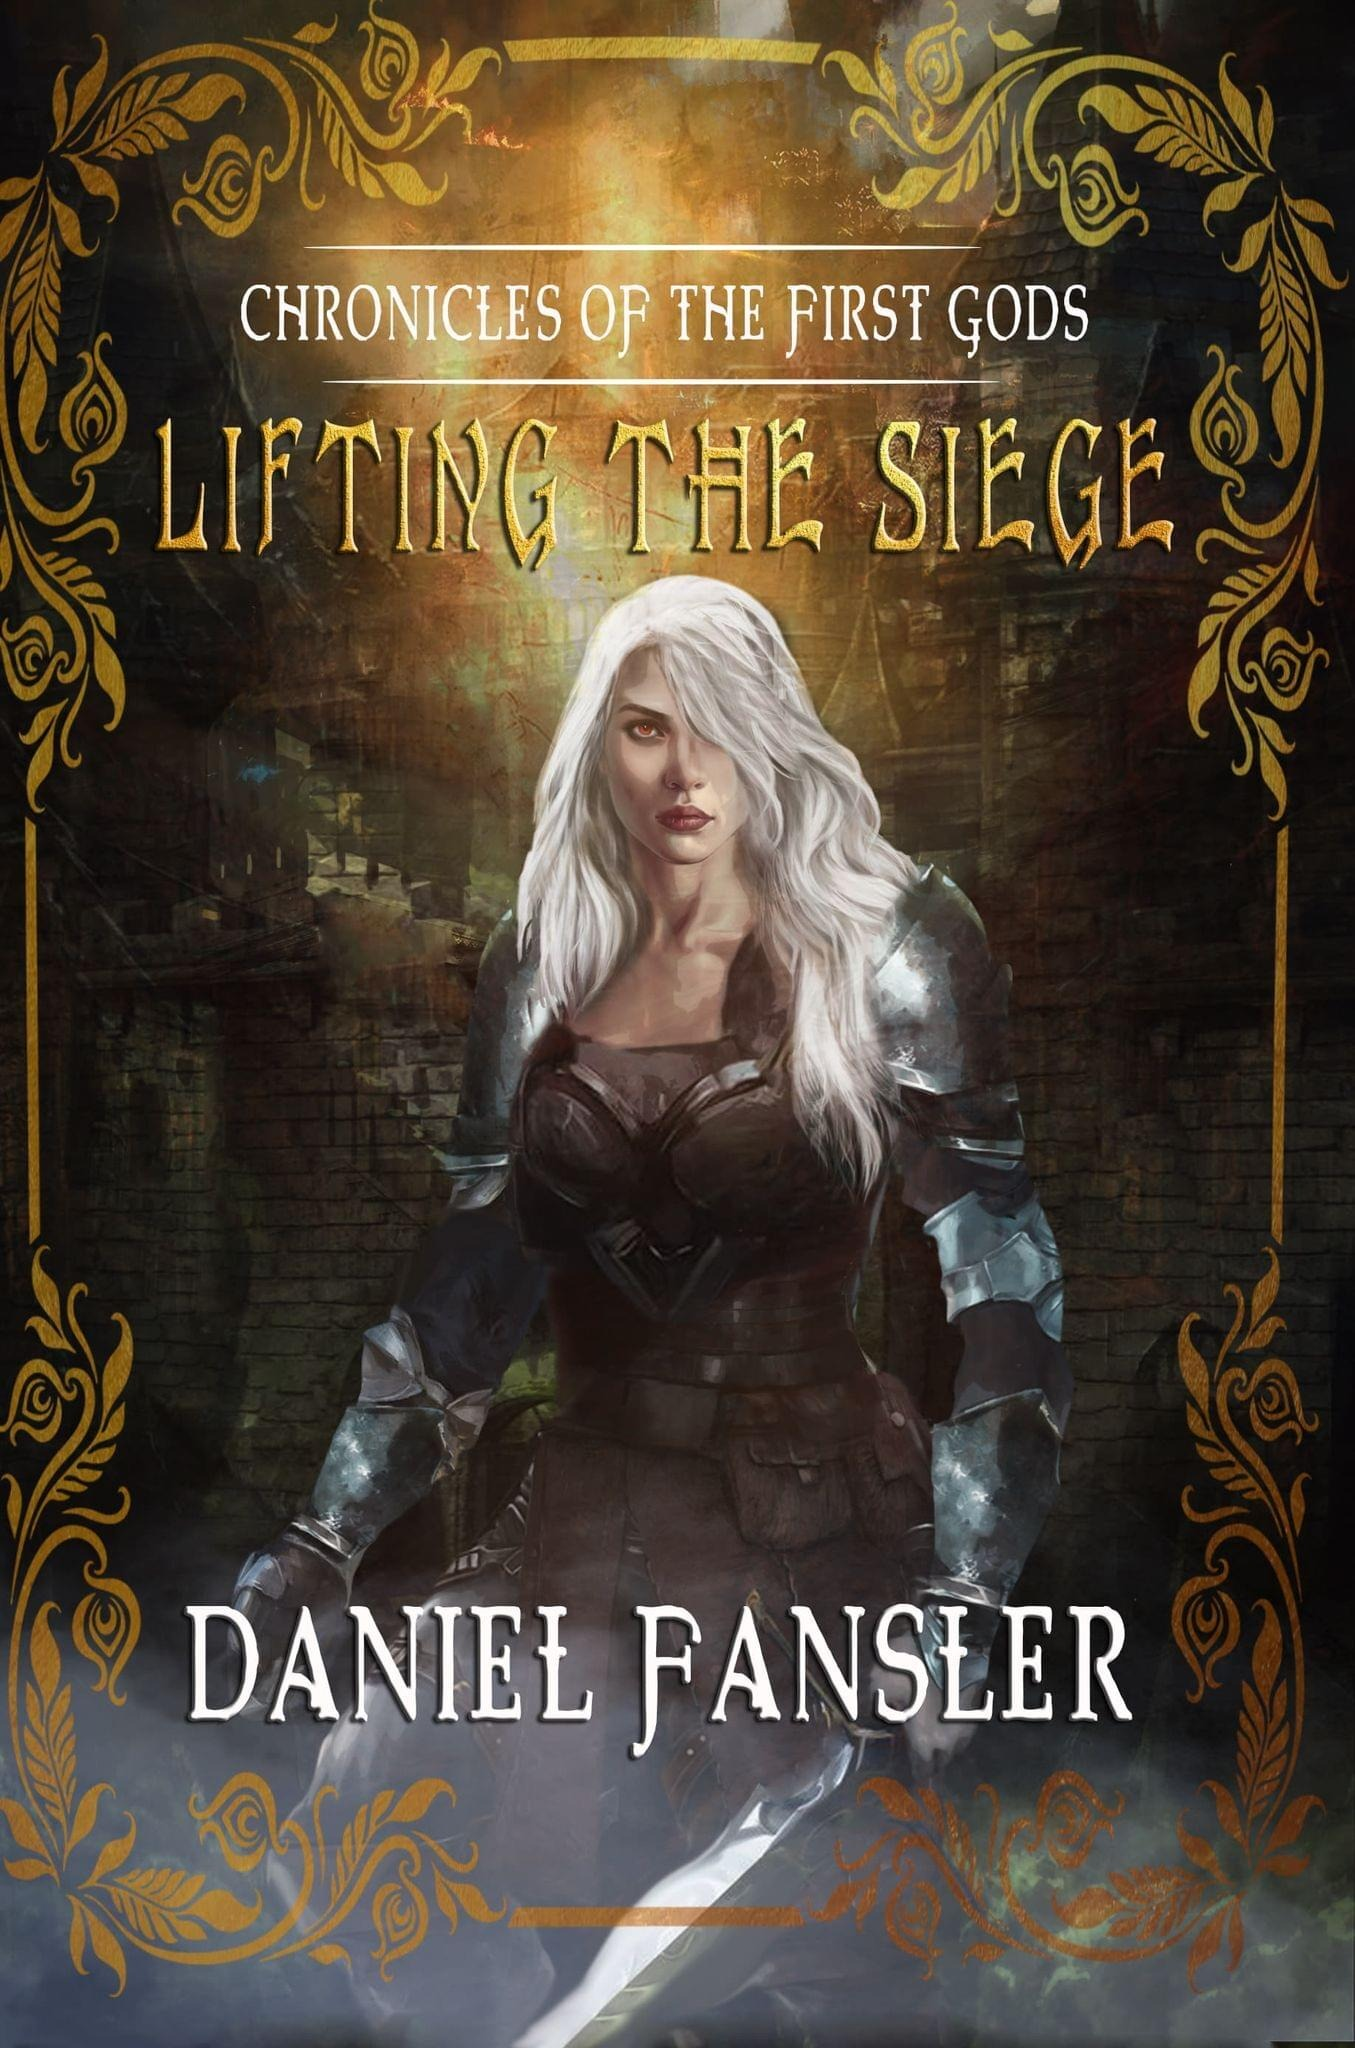 Daniel Fansler - Lifting The Siege Book Cover